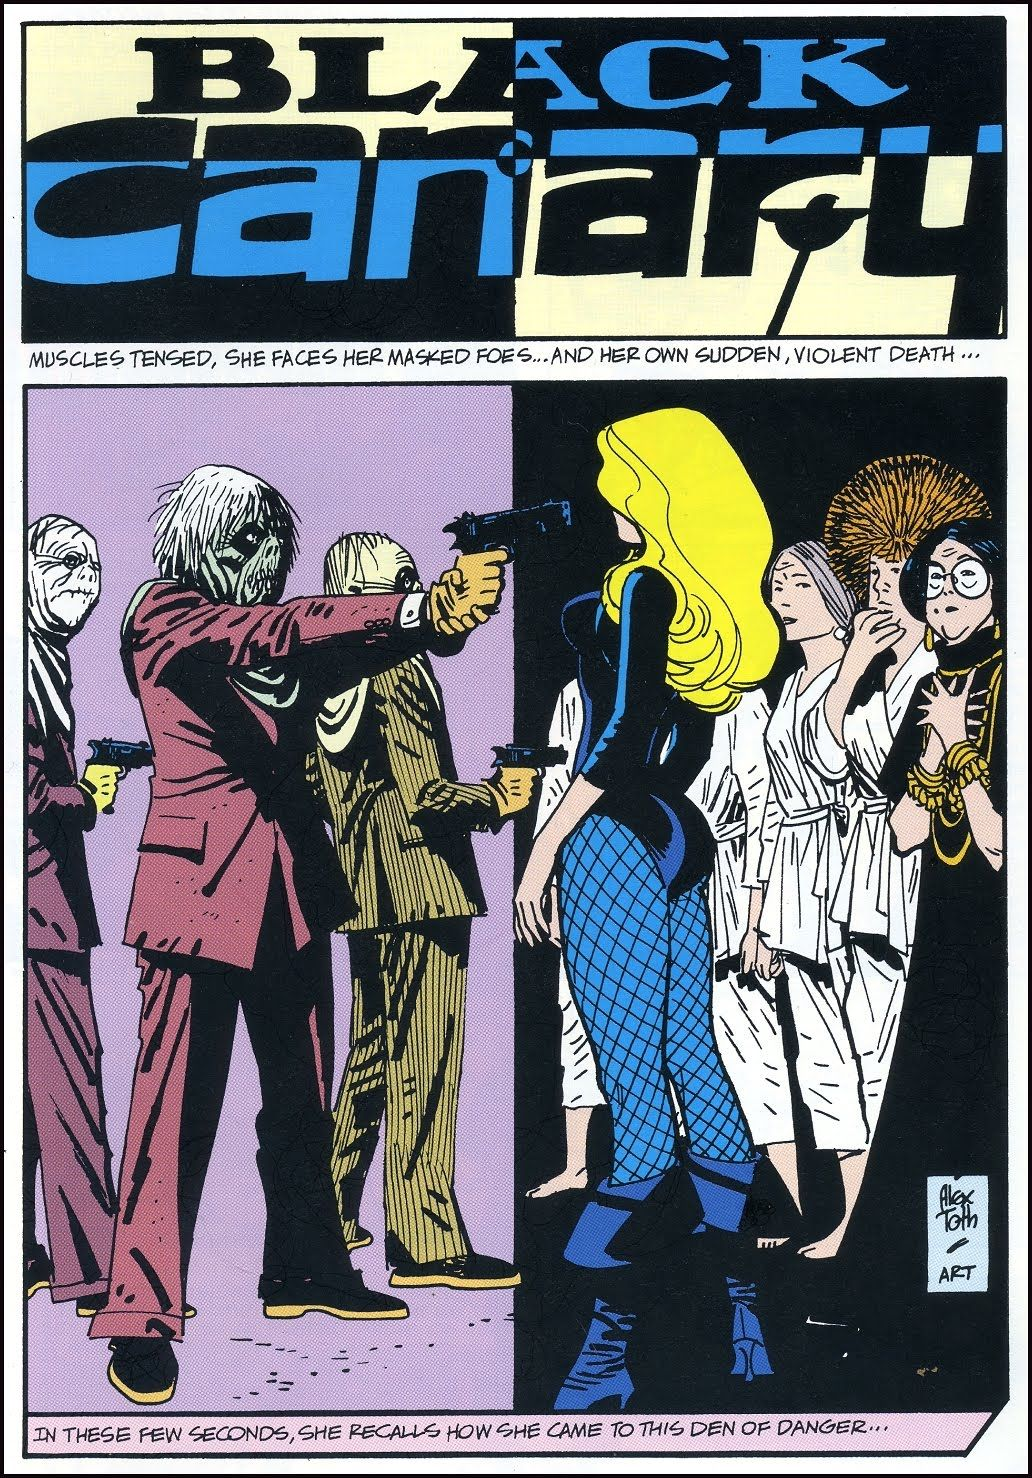 Adventure Comics n°418 (Black Canary 1/2) - Art by Alex Toth